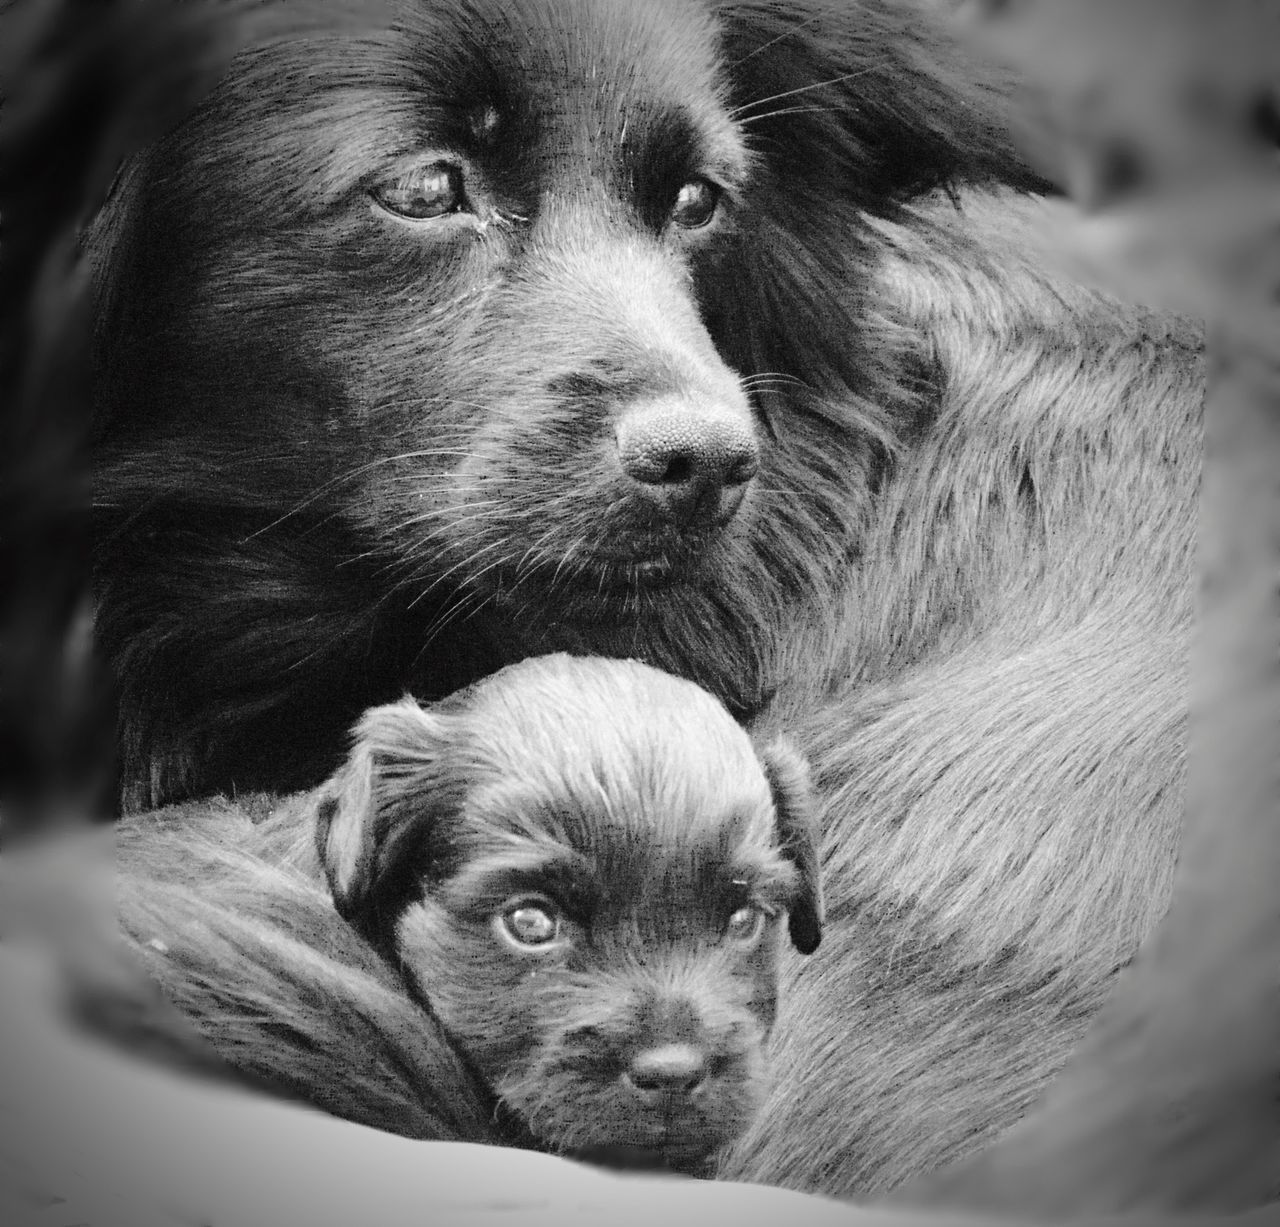 Dog Mammal Animal Themes Cute Pets Domestic Animals Maternity Black Blackandwhite Animal Family Puppy Looking At Camera Animal Eye Only One No People Portrait Indoors  Day Total Black EyeEmNewHere